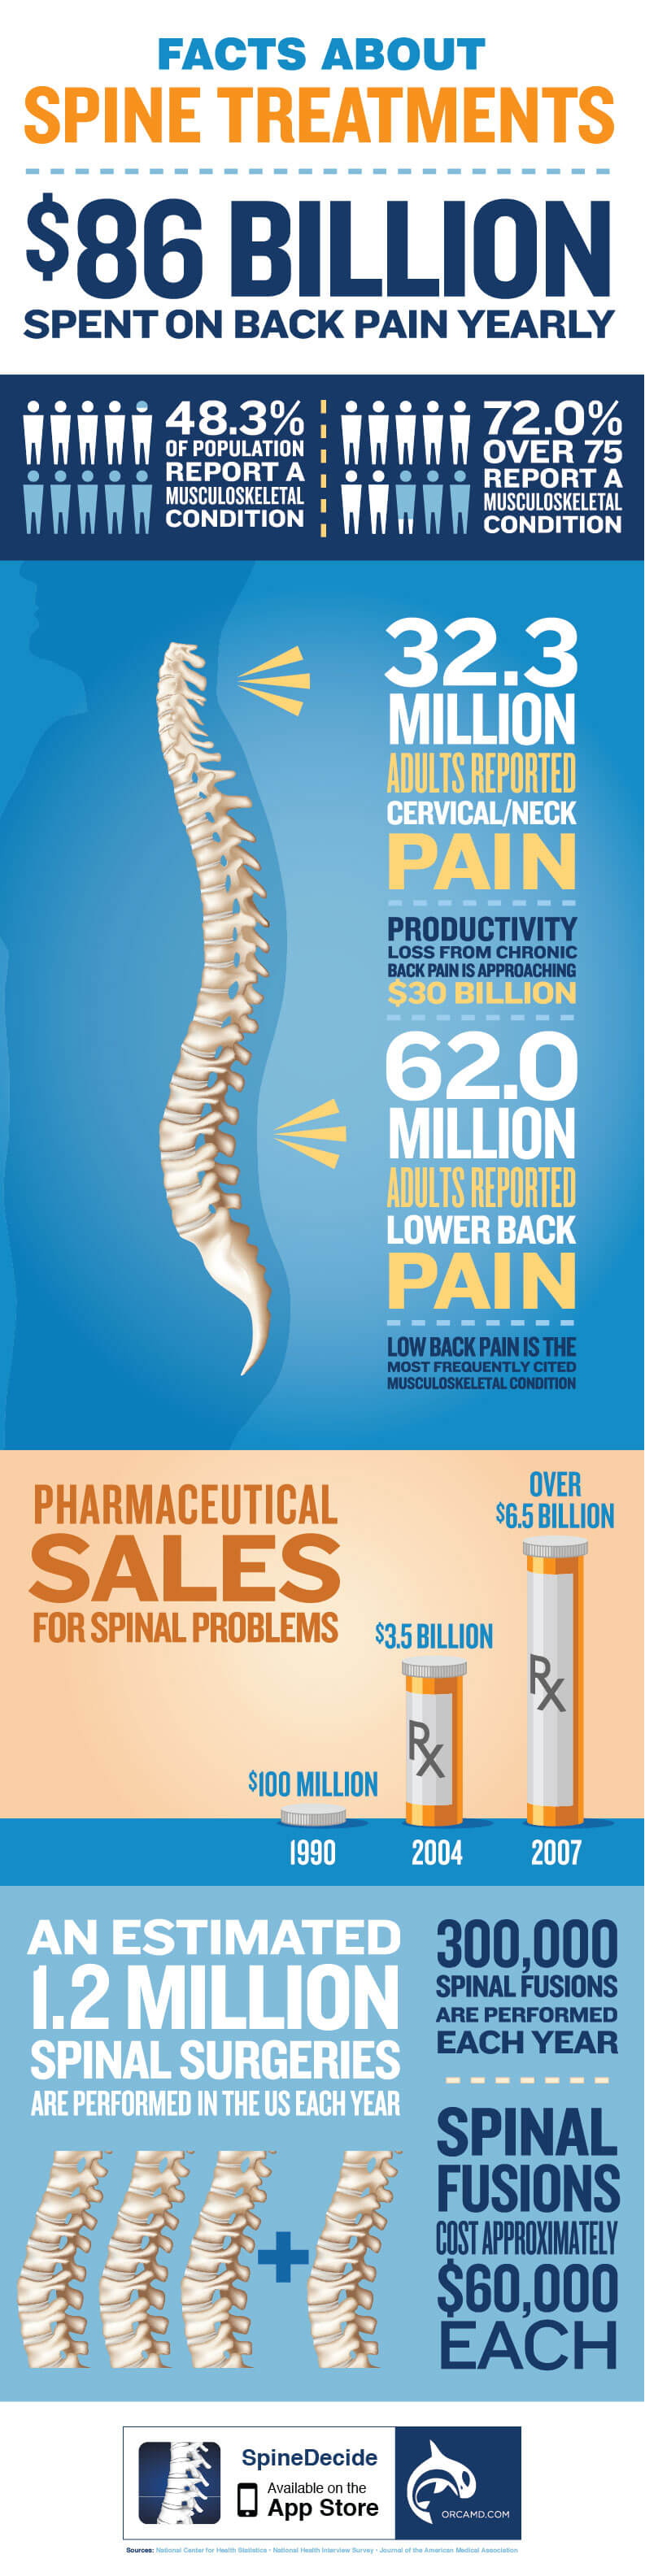 Spine Treatment Facts